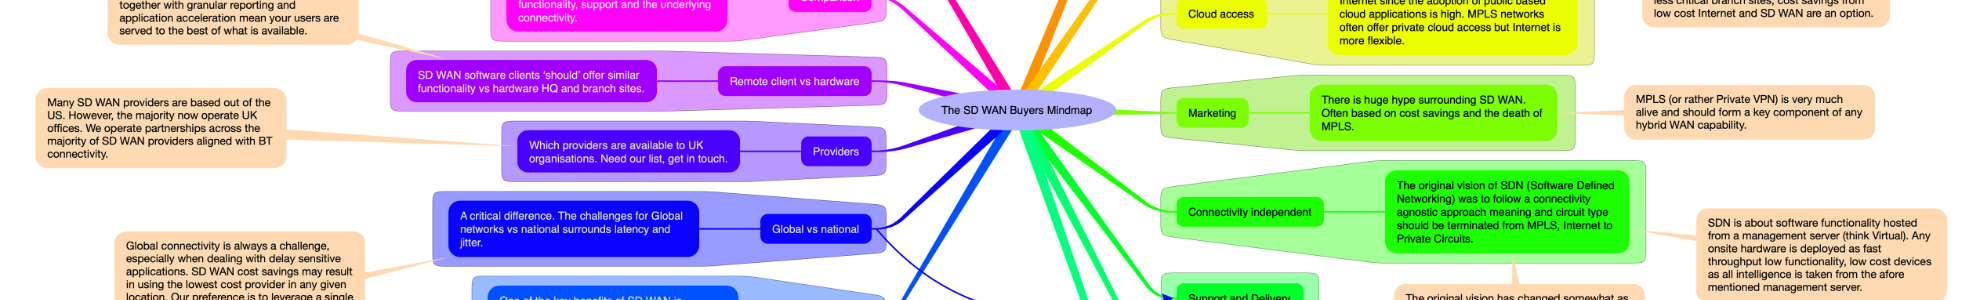 Is there a guide to SD WAN vendors?